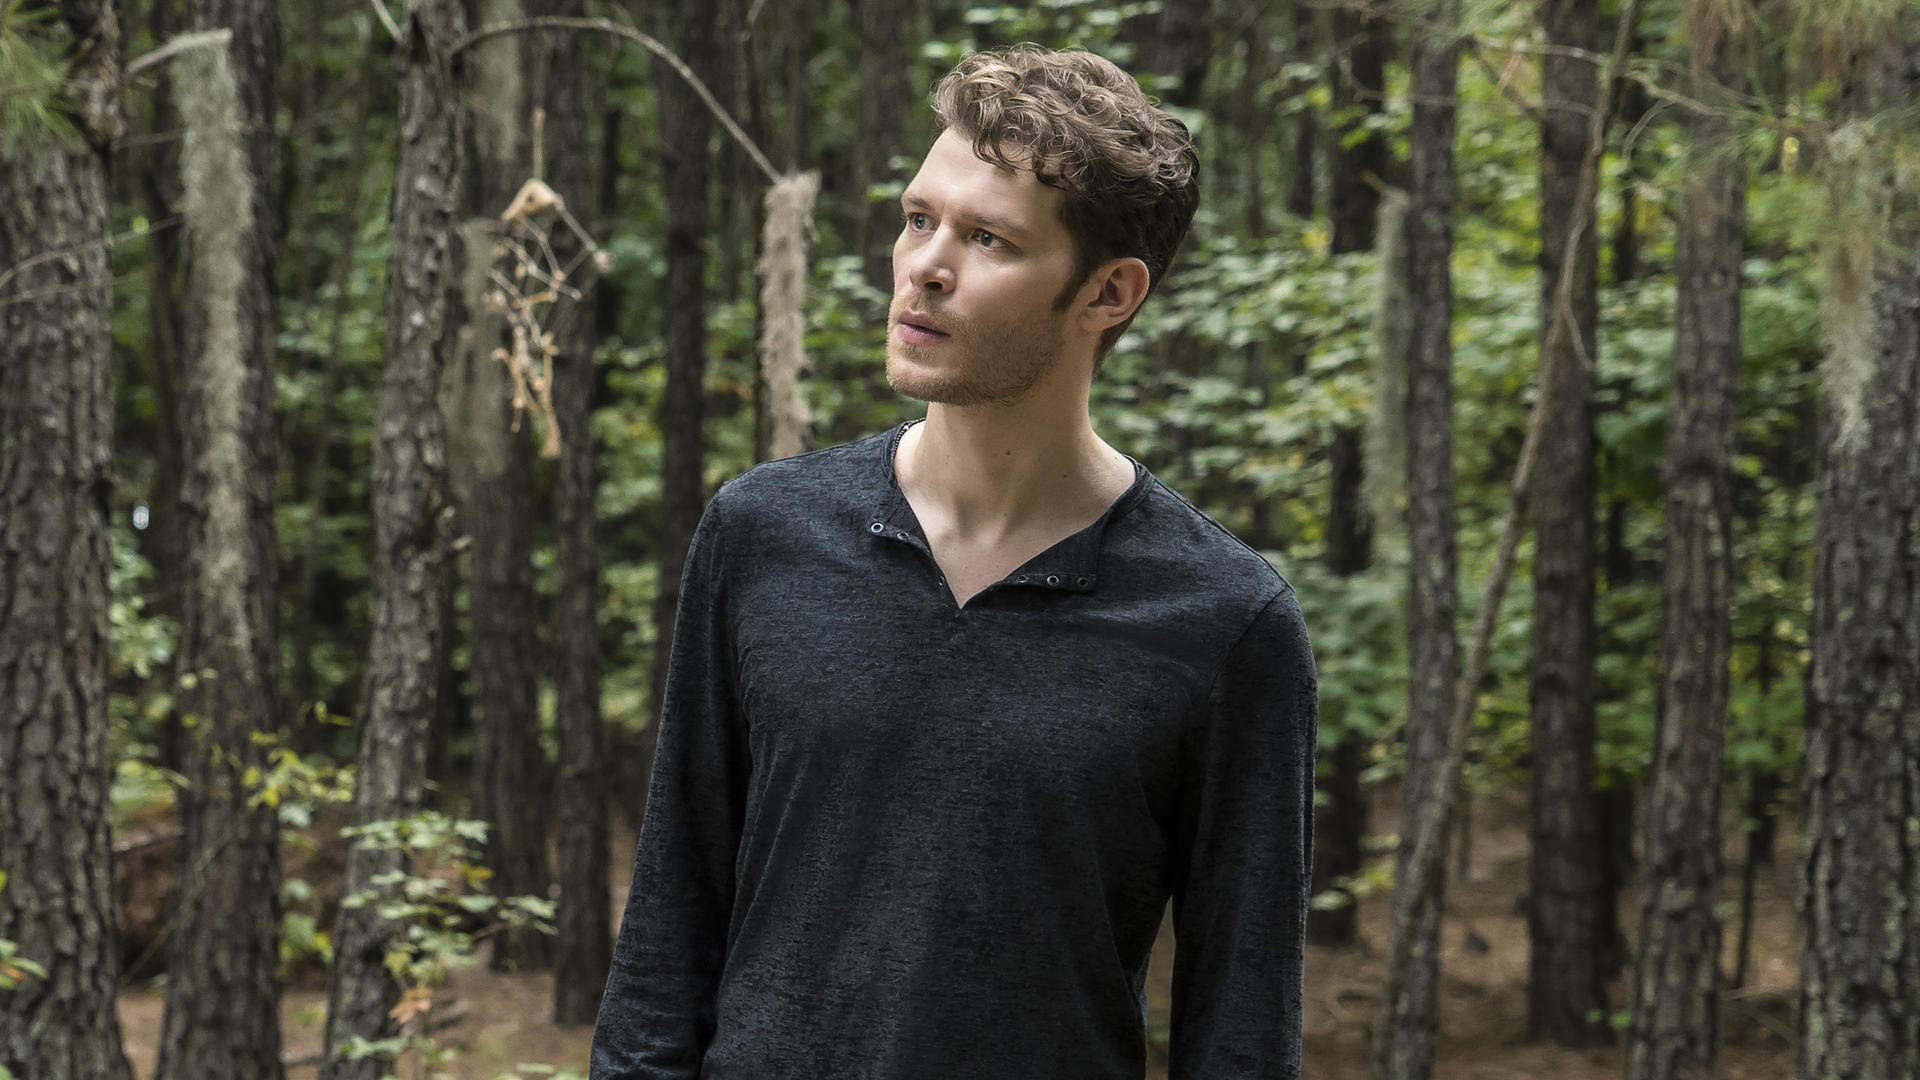 The Originals (S04E01): Gather Up The Killers Summary - Season 4